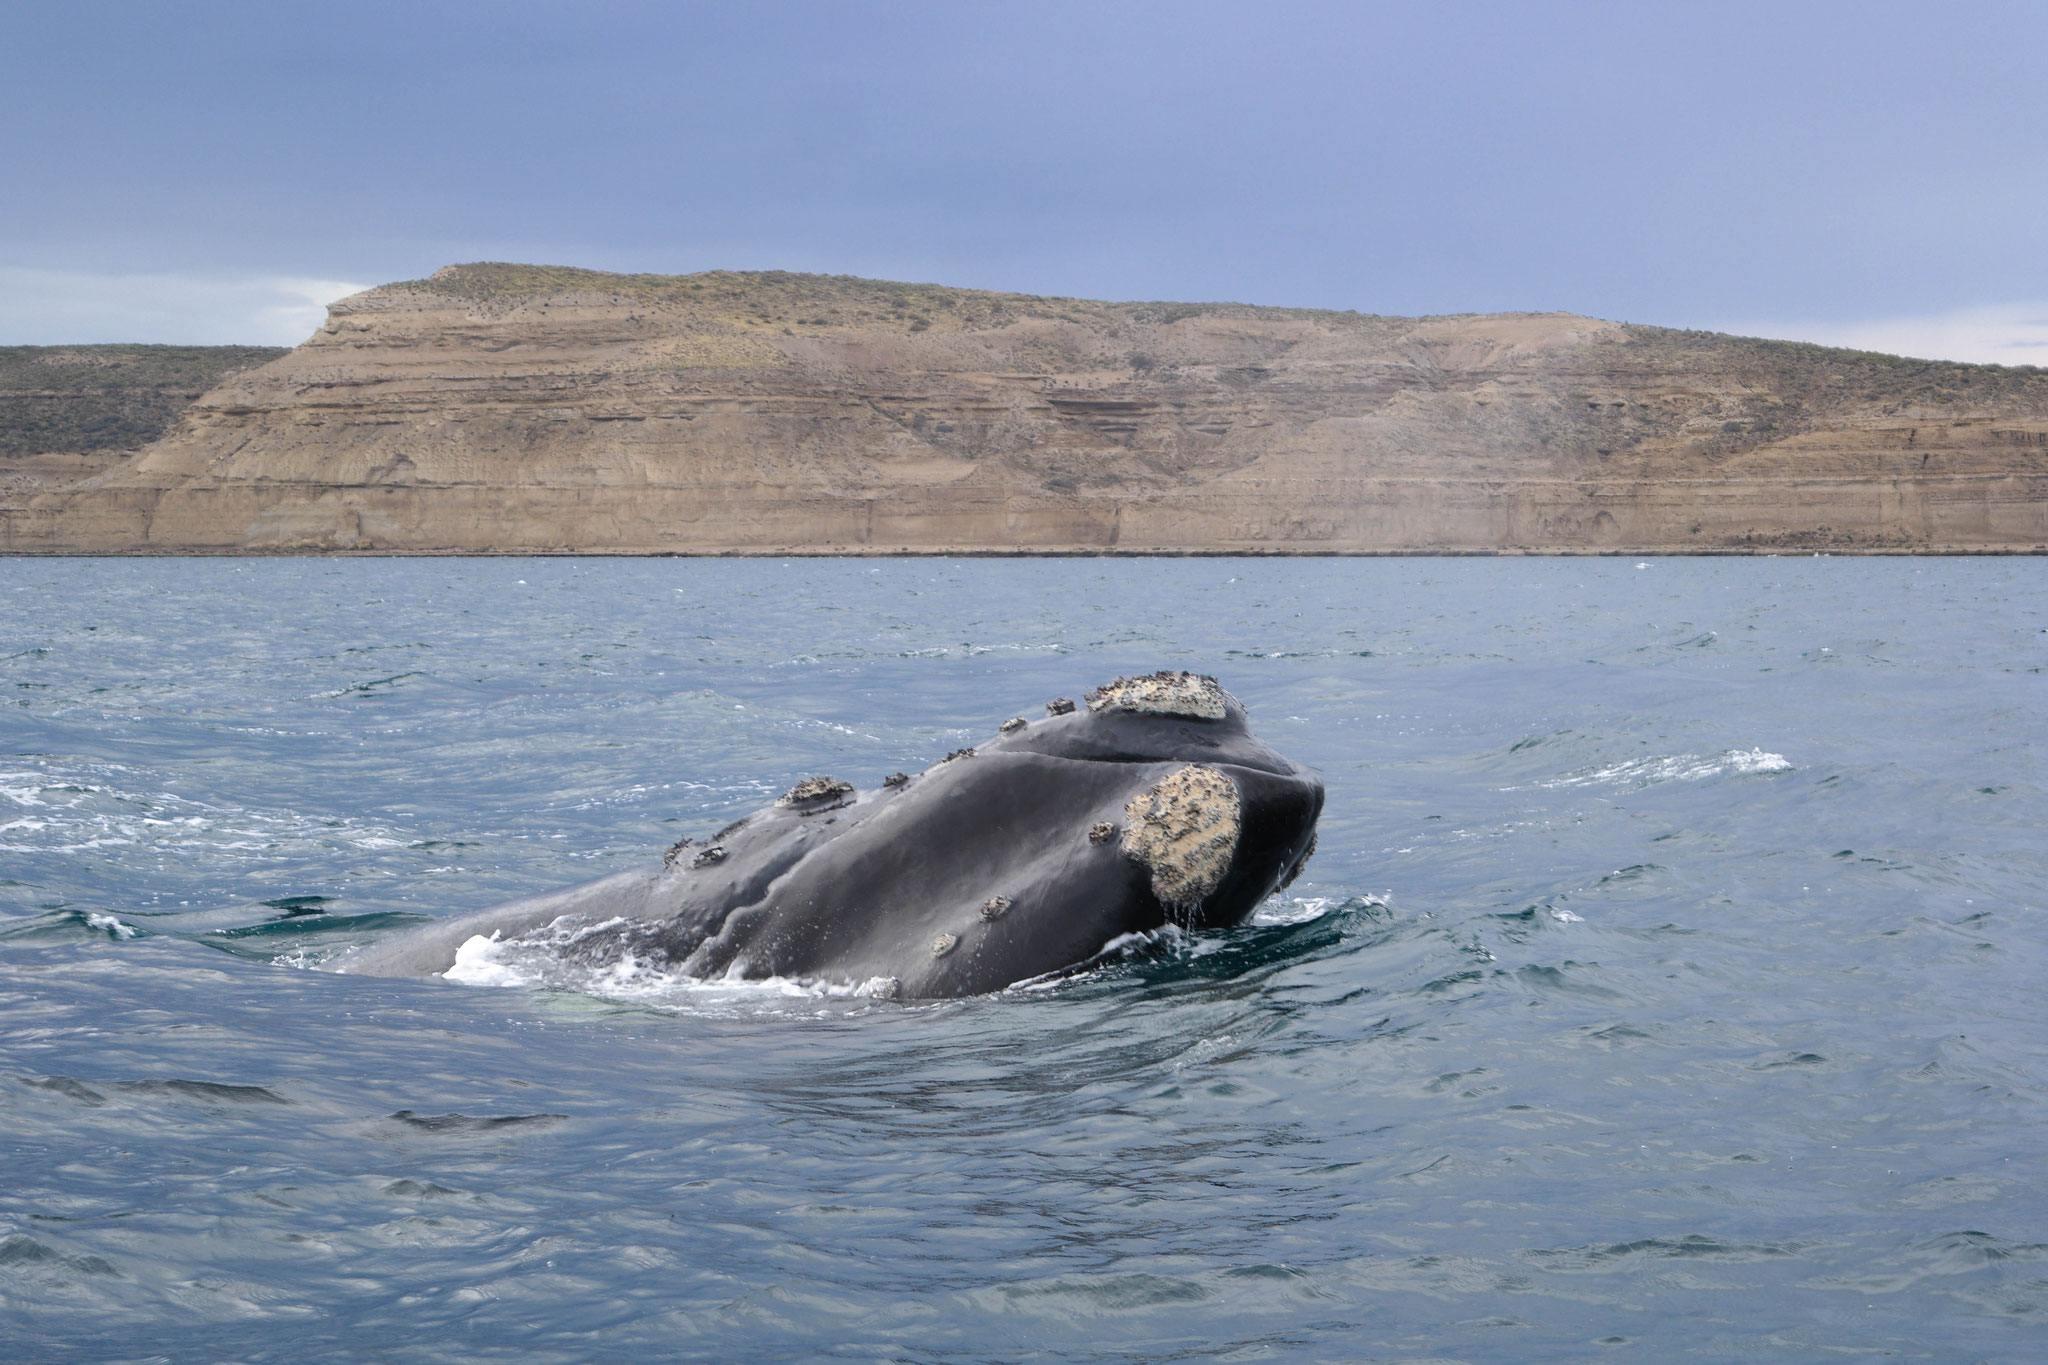 This time the southern right whale decided to not only show his fin but actually come out of the water.